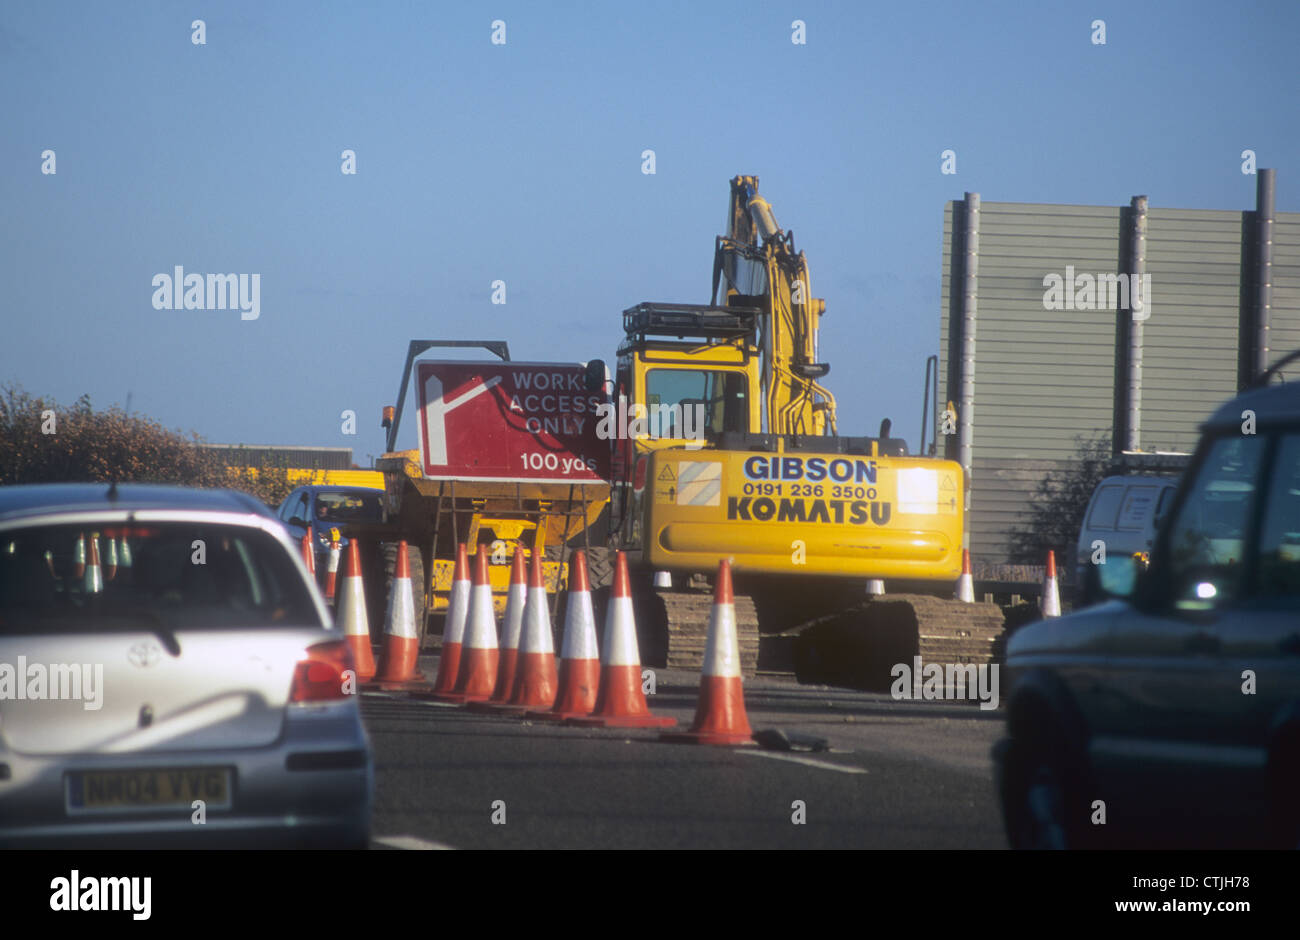 A Komatsu Excavator employed upon a road re-surfacing project in Northern England, as traffic is directed by feeder - Stock Image